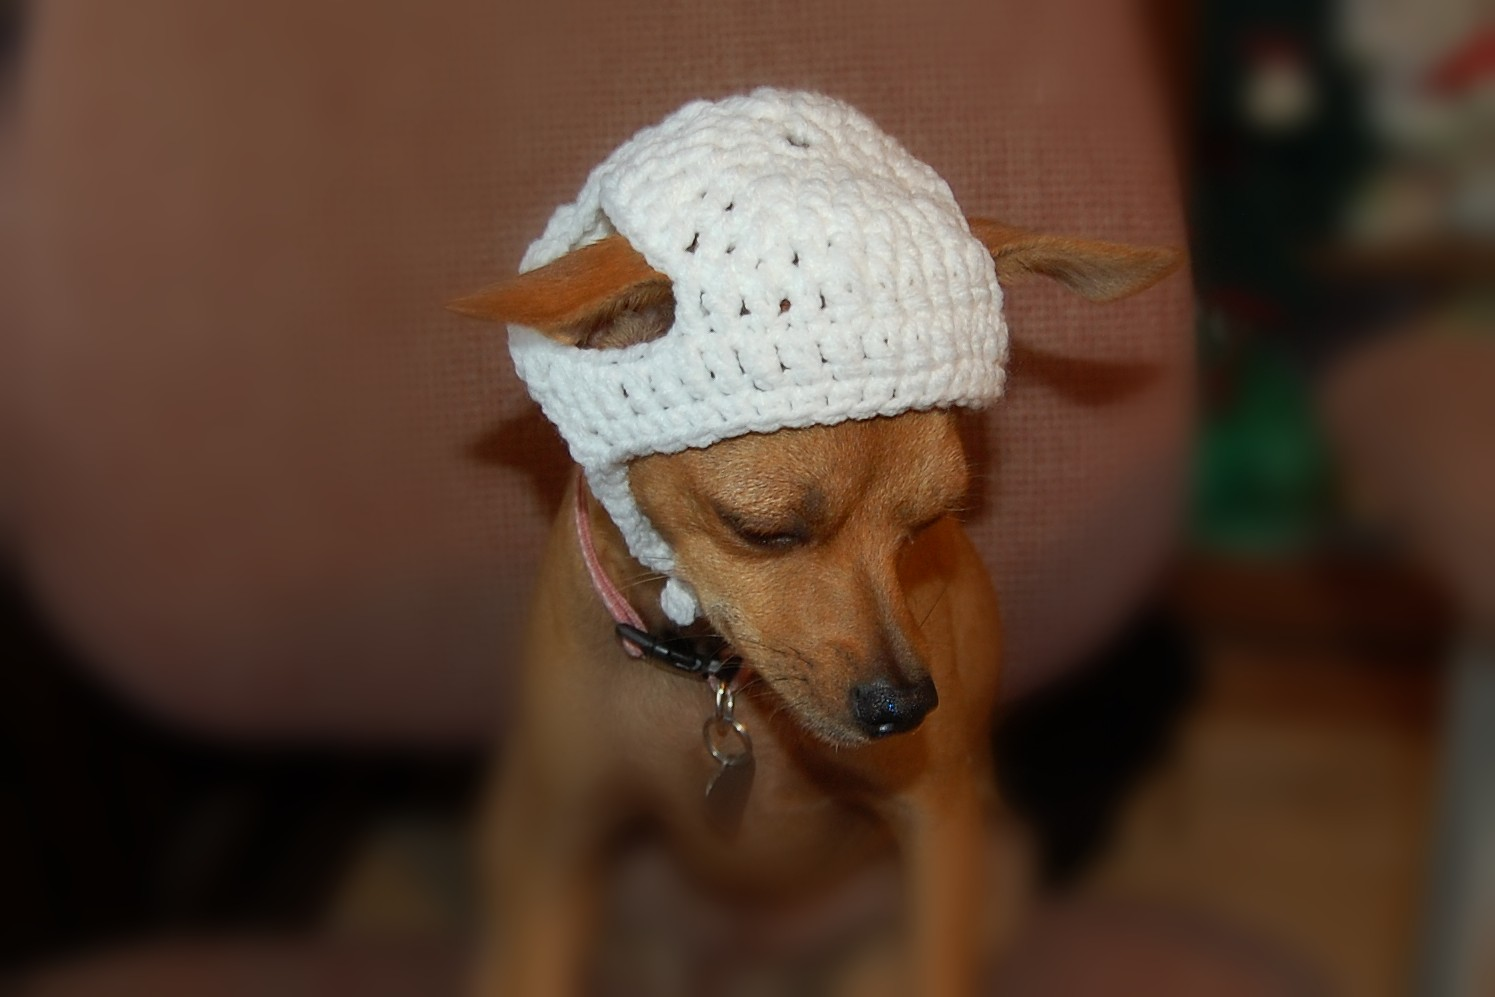 Chi crochet sweater pattern - Chihuahua Forum : Chihuahua Breed